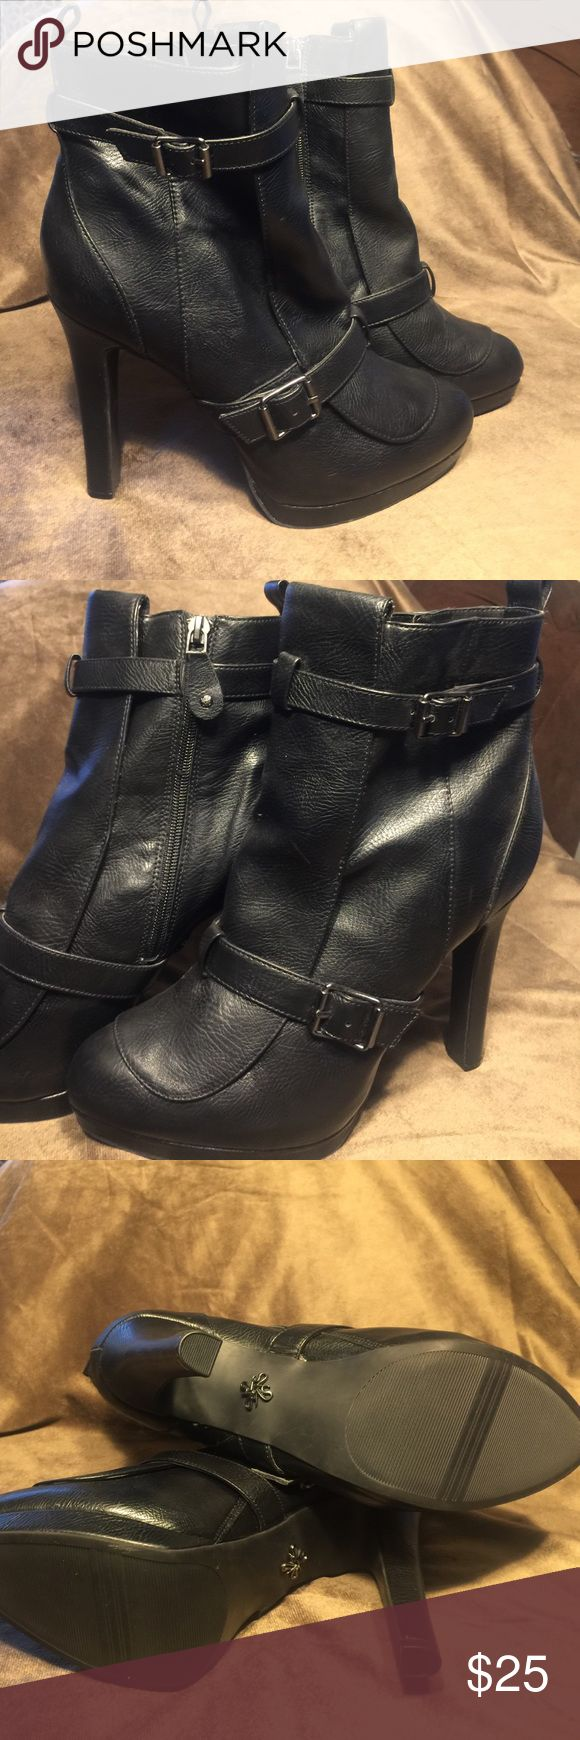 "Simply Vera Vera Wang Motorcycle Pumps These Simply Vera Vera Wang over the ankle motorcycle booties are fierce! 5"" heel. Never worn. NWOT. Simply Vera Vera Wang Shoes Ankle Boots & Booties"